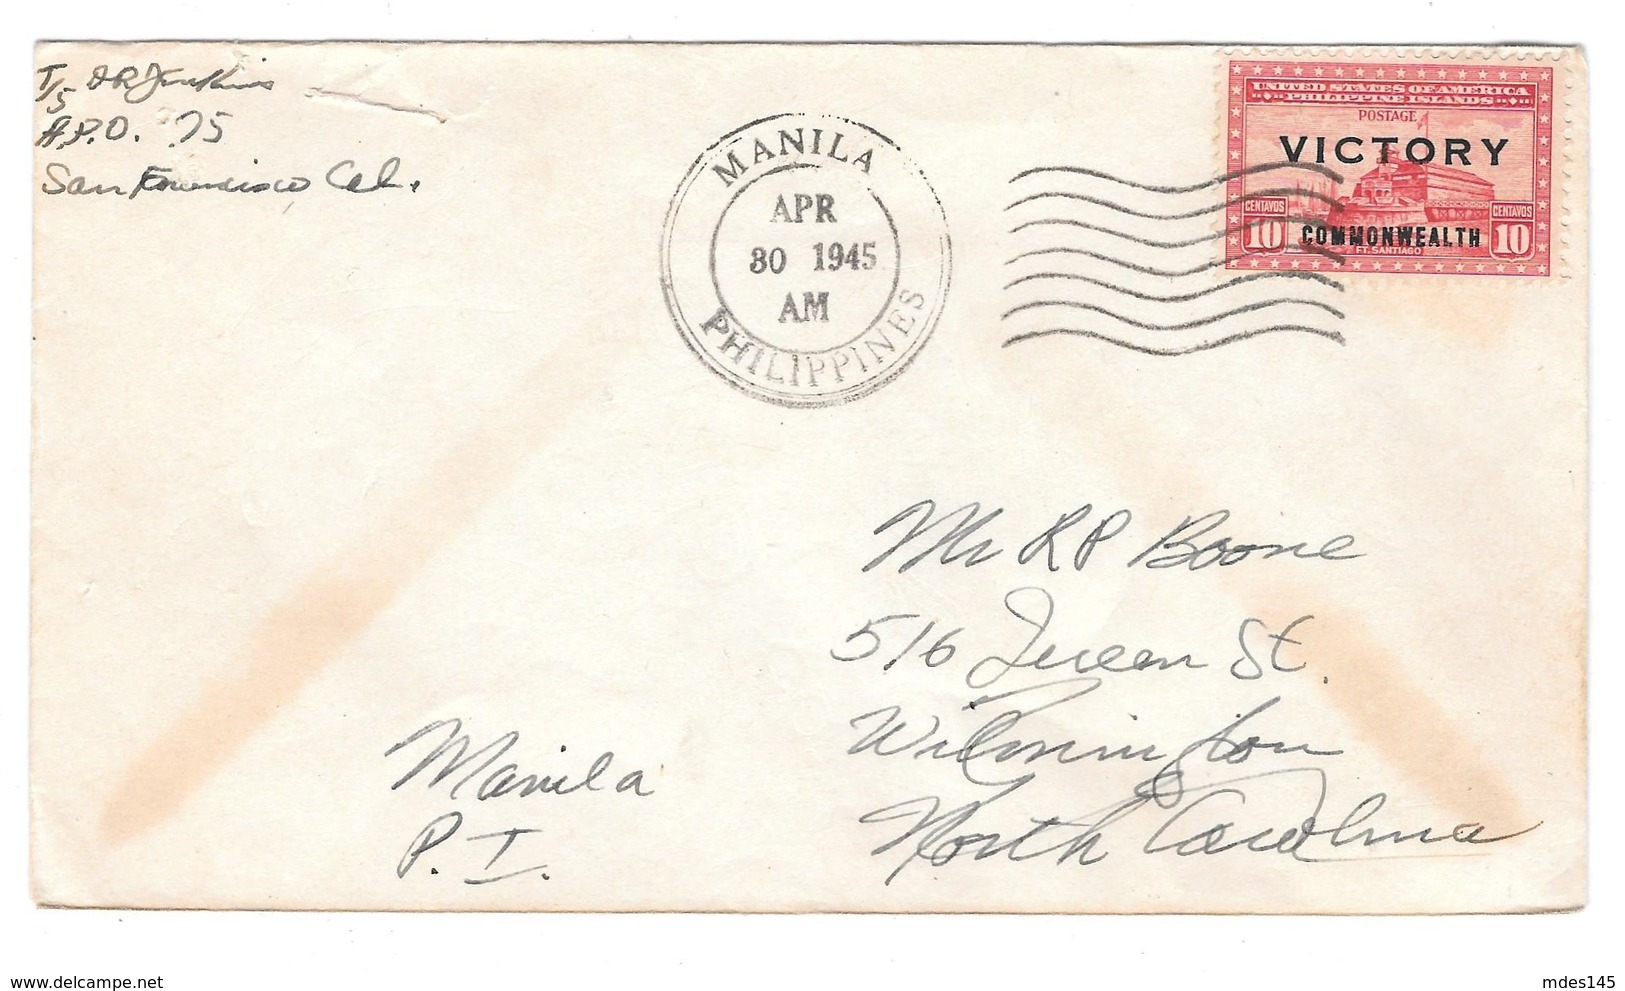 Philippines Manila 3 Covers Victory Issues April 30 1945 Sc. 486 487 489 - Philippines